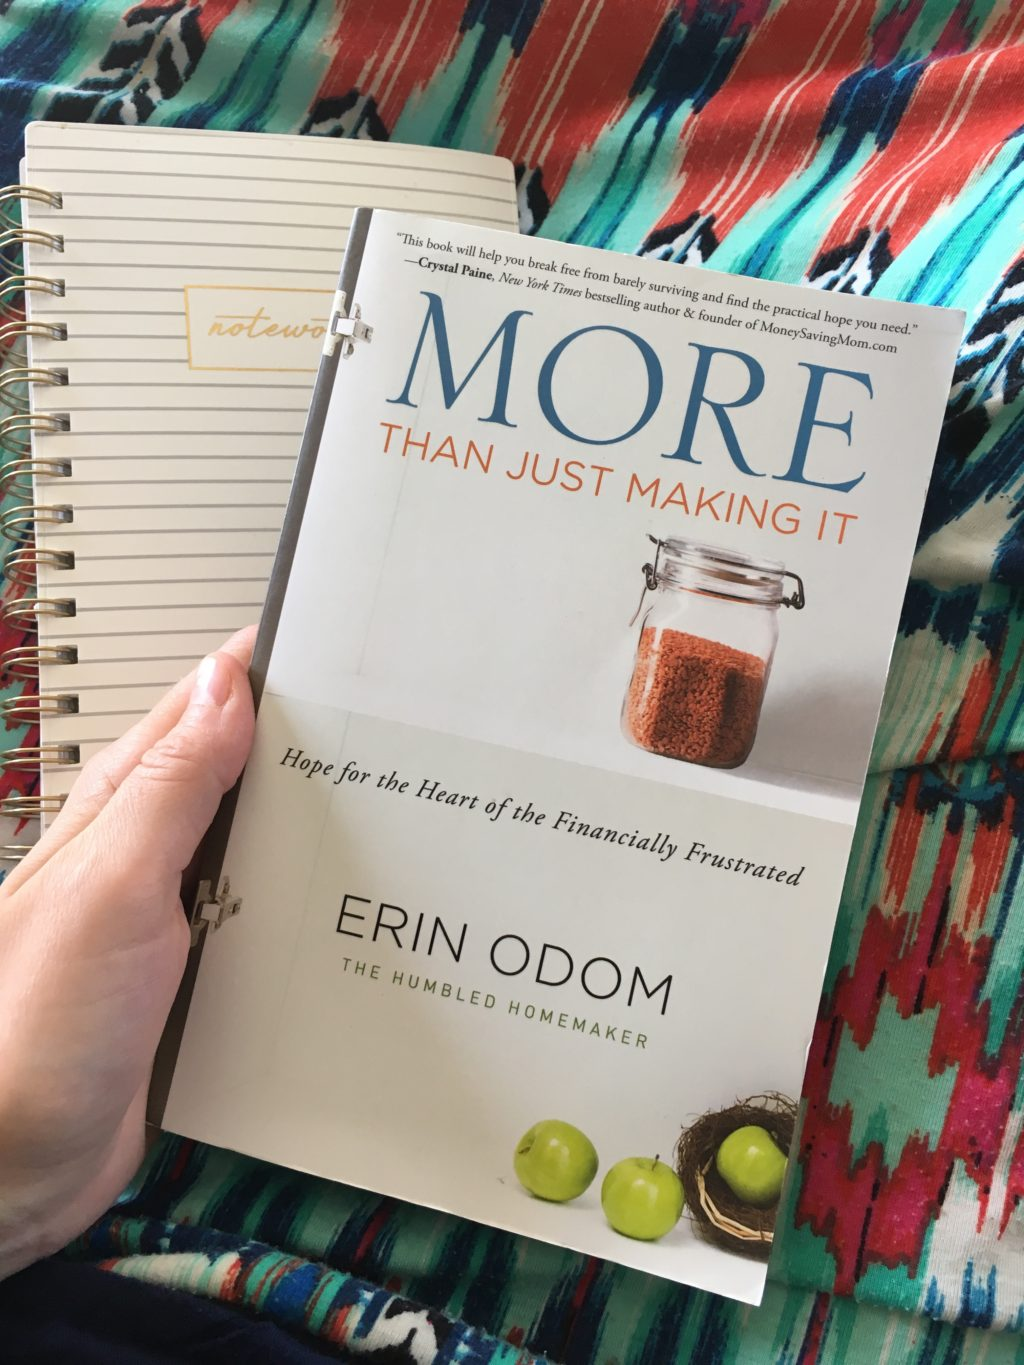 More Than Just Making It by Erin Odom